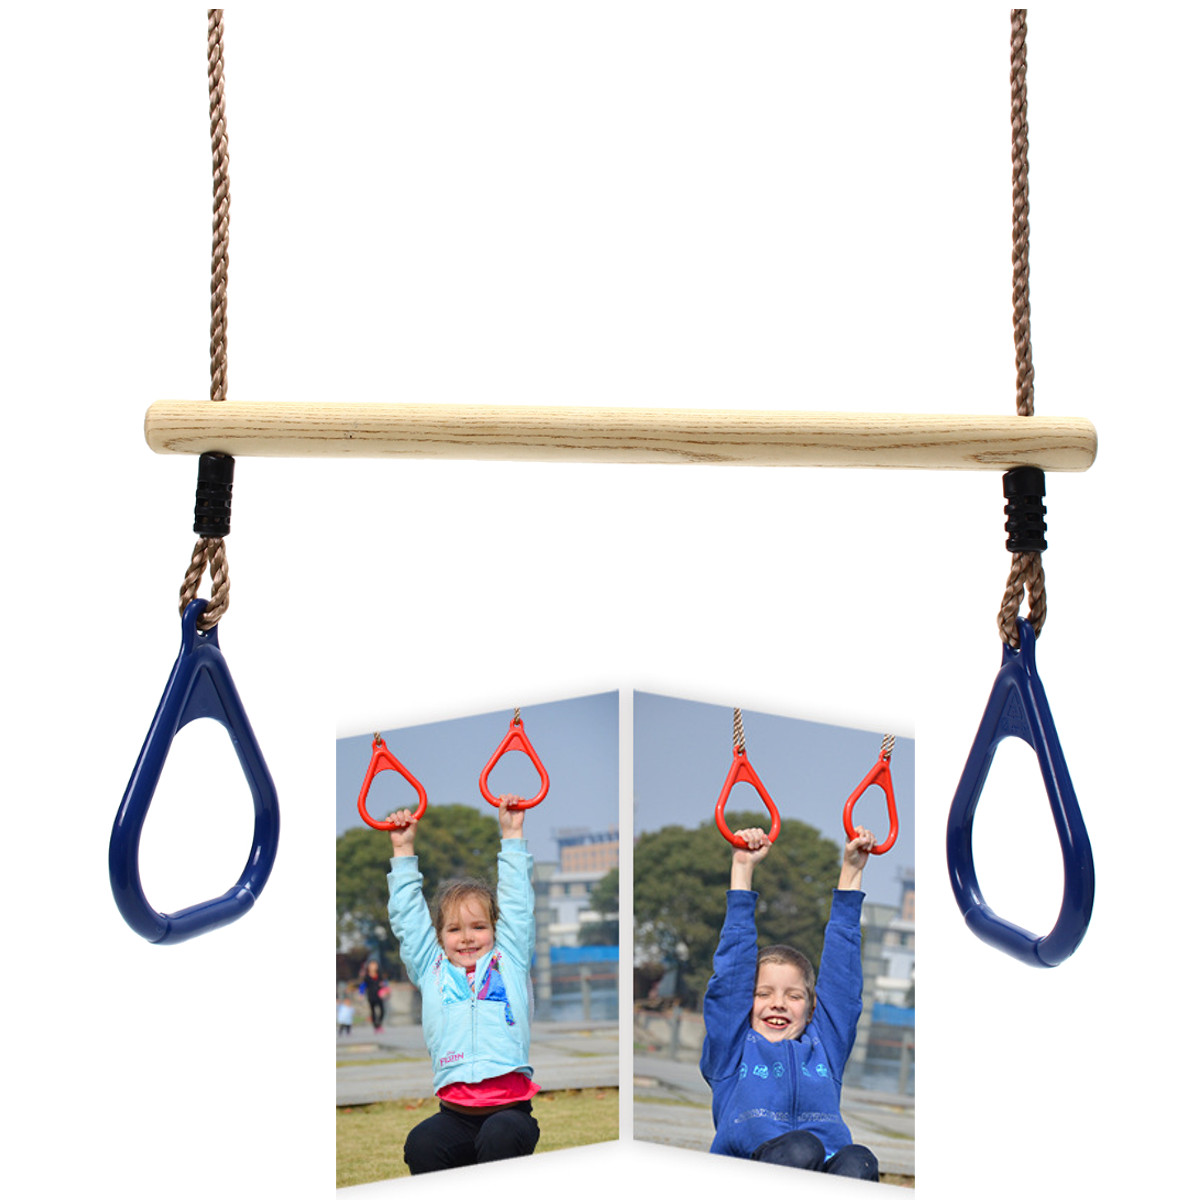 Wooden Jungle Gym Swing Seat Hammock Chair For Outdoor Children's Fitness Sports Swing Training